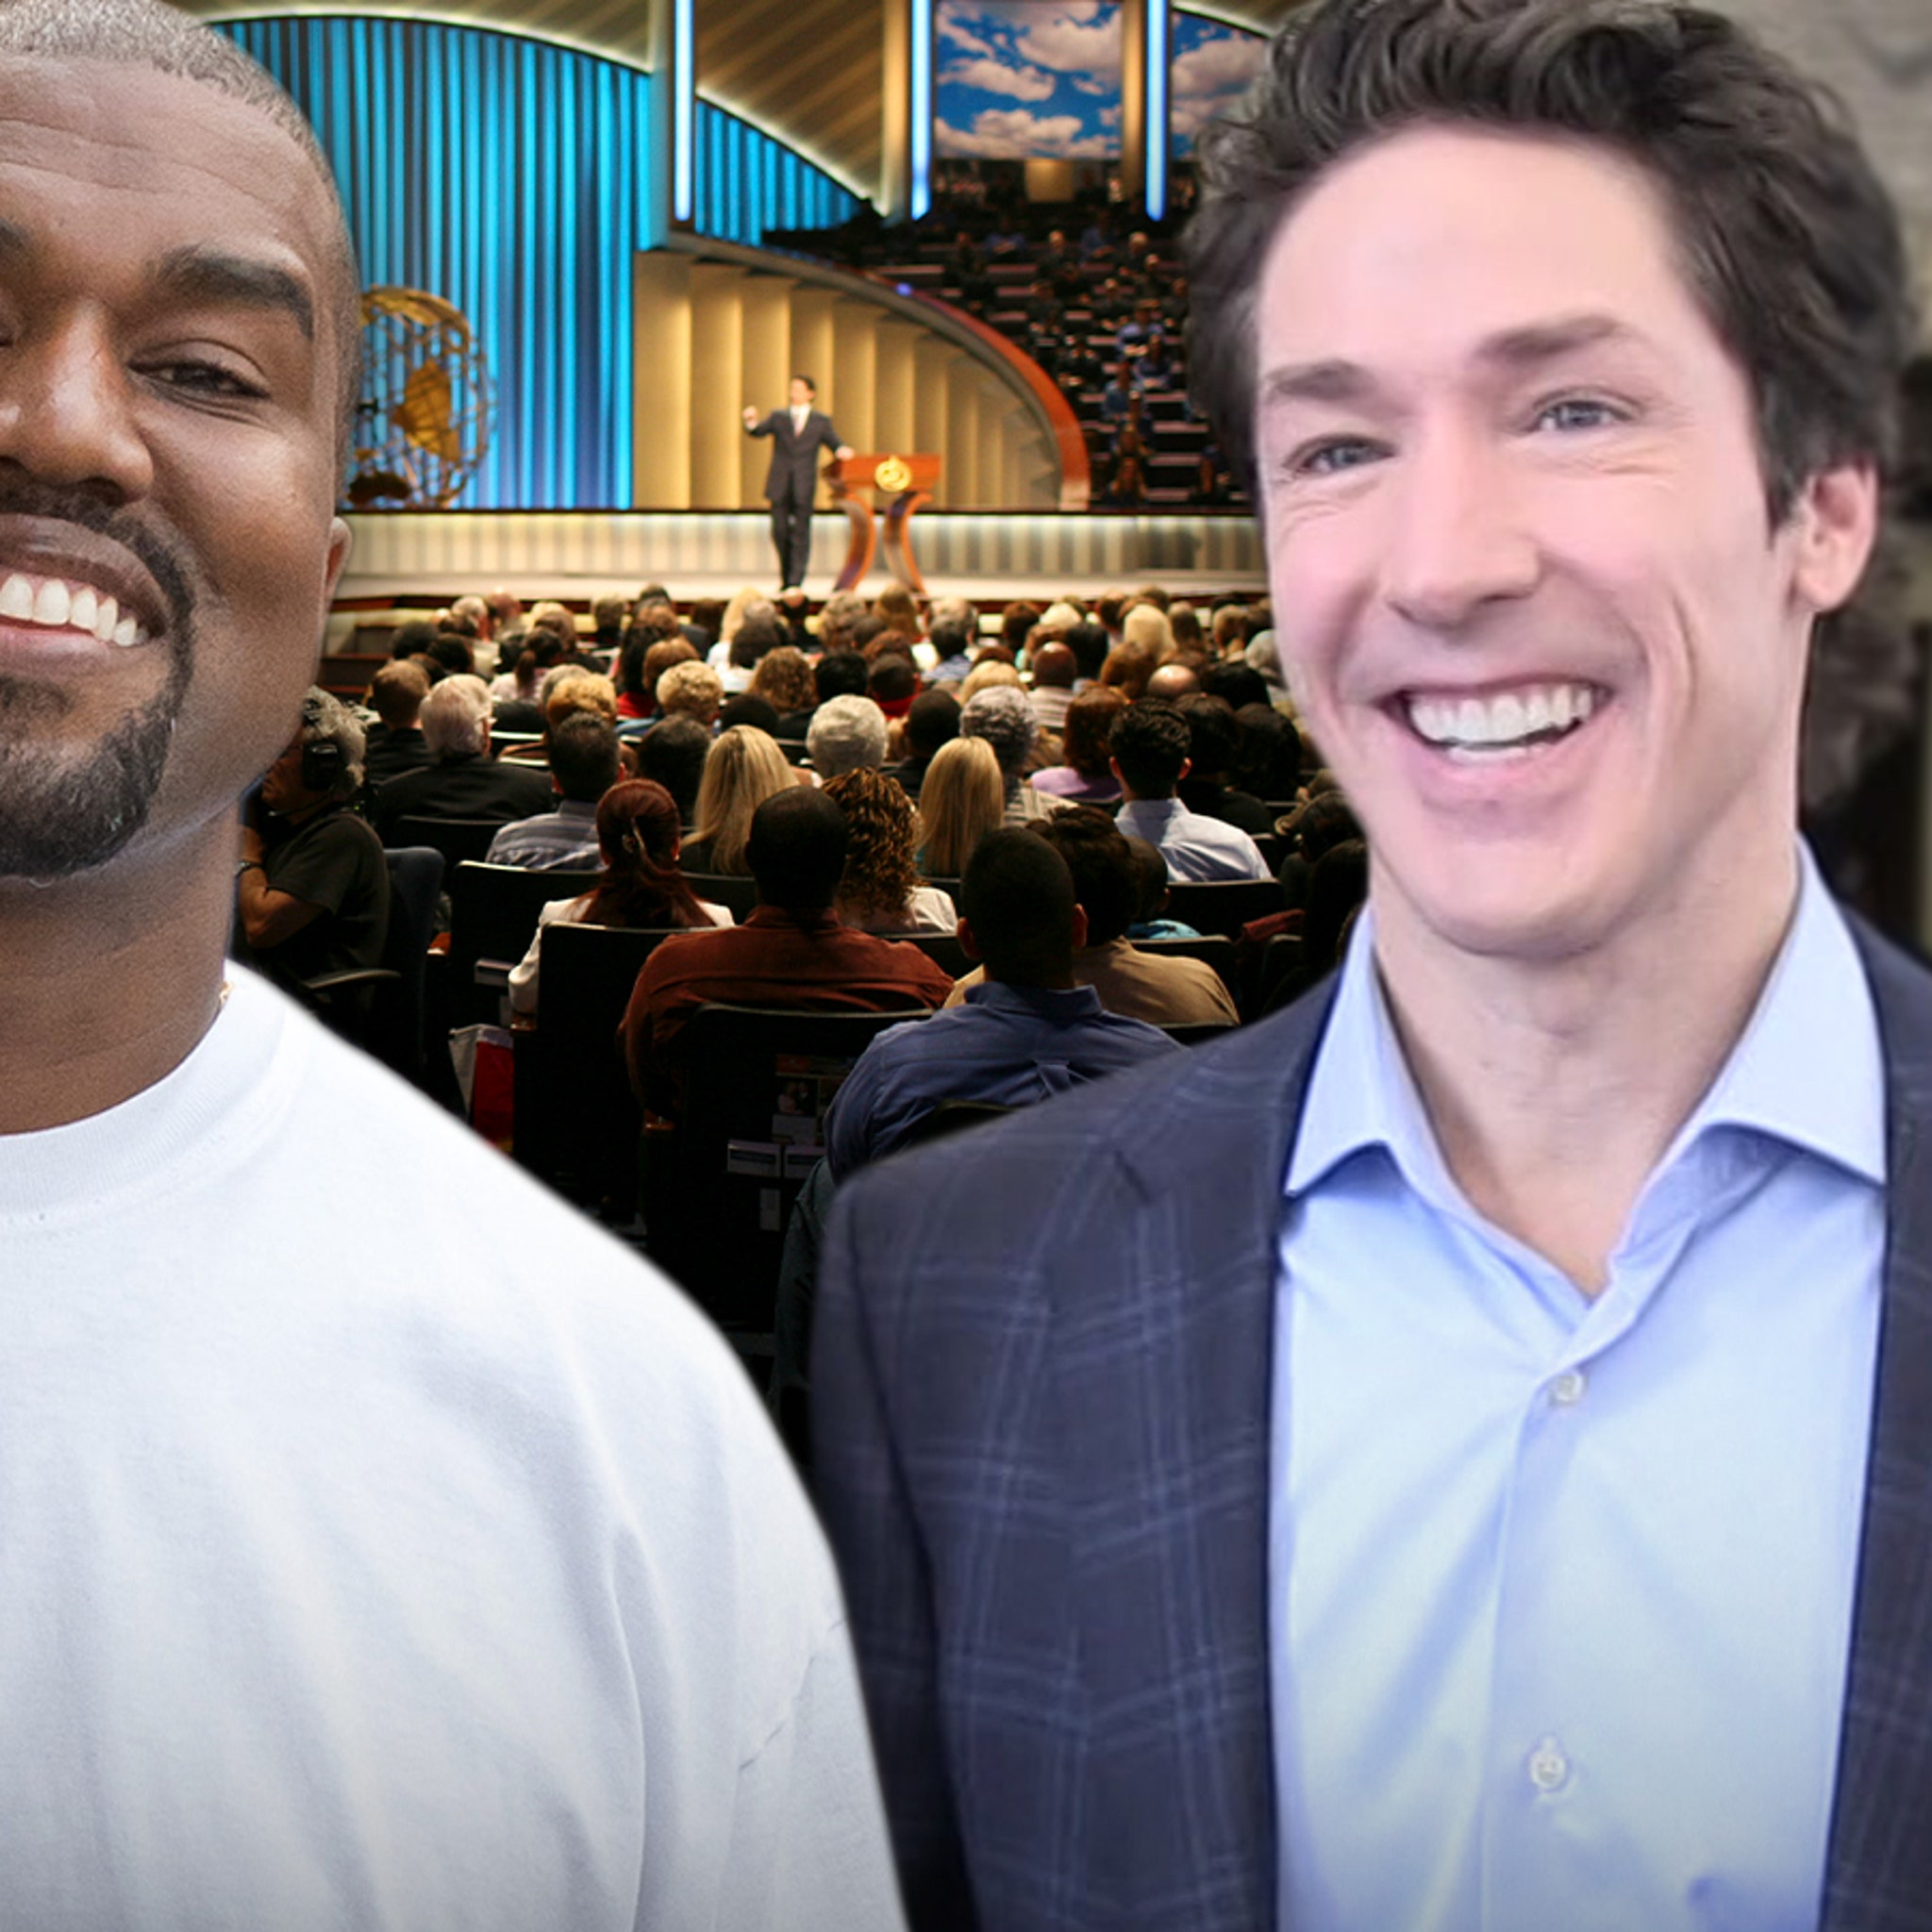 Kanye West's Sunday Service at Joel Osteen's Church Requires Tickets